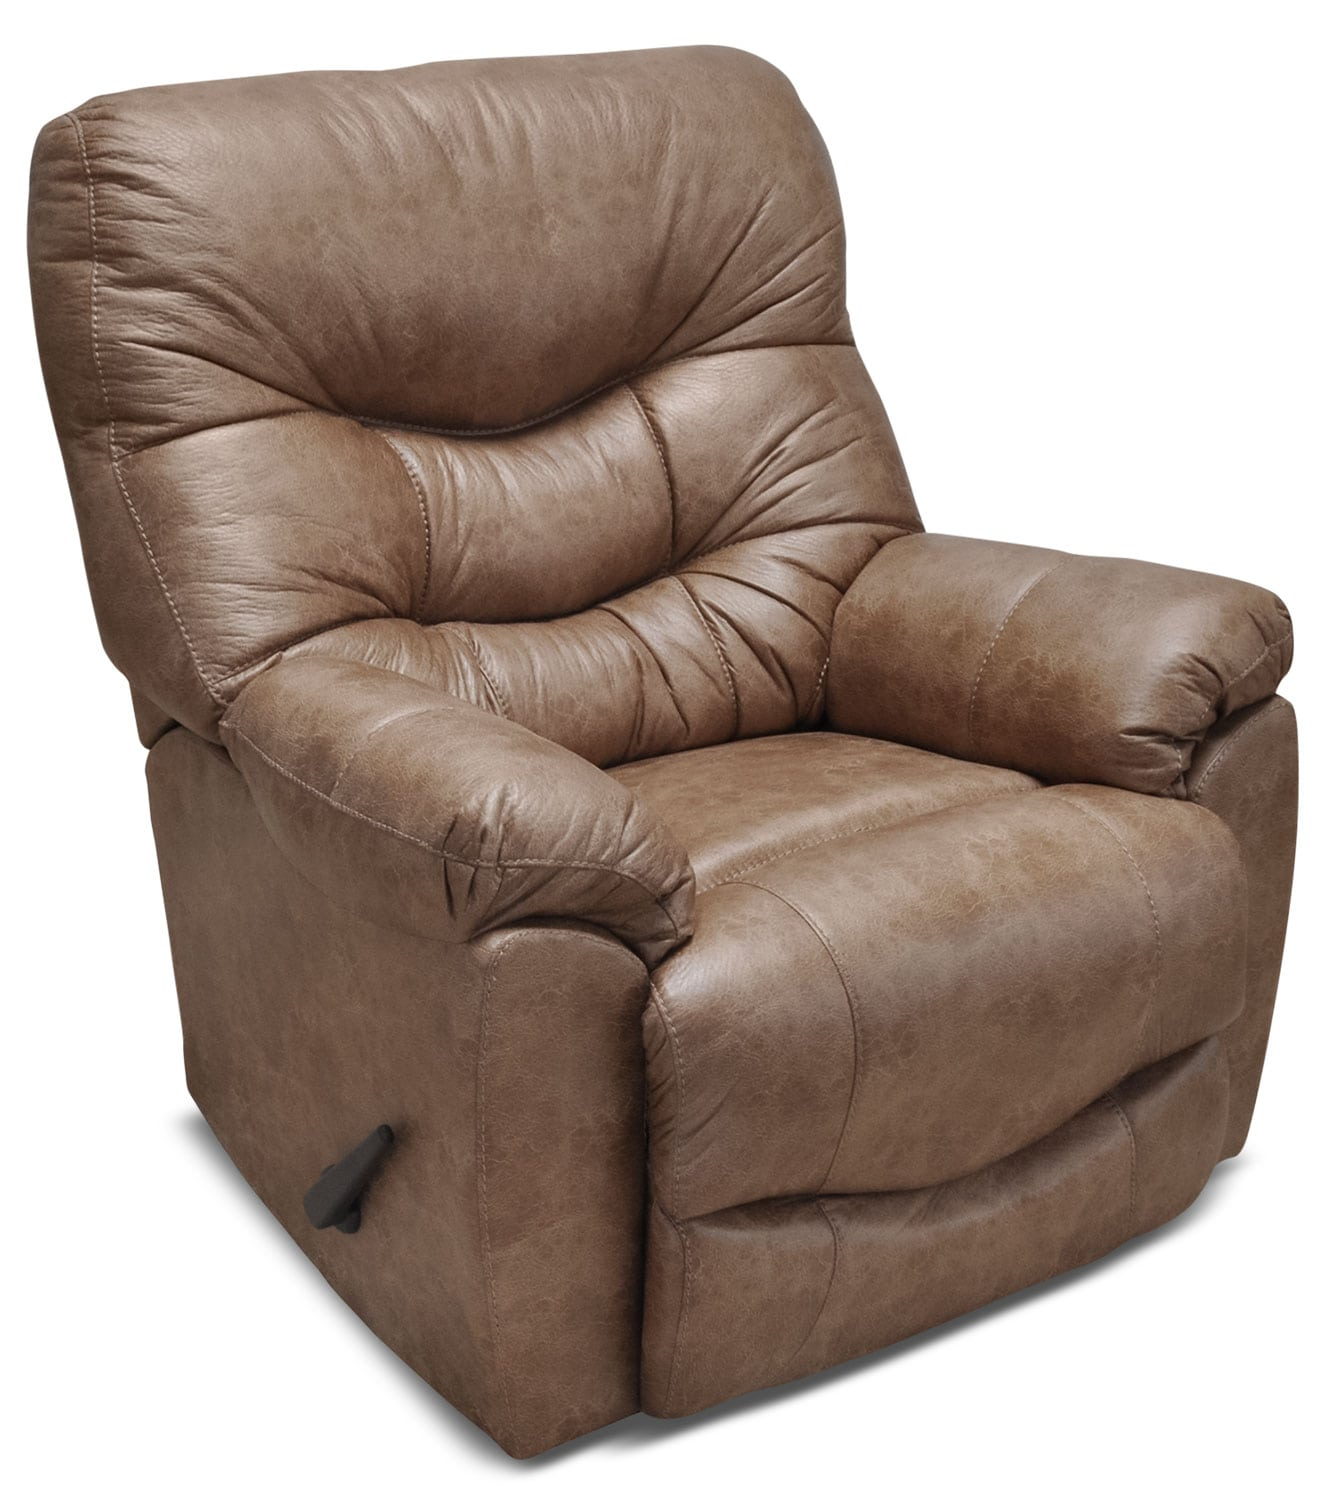 4595 leather look fabric rocker reclining chair camel - Fabric rocking chairs living room ...